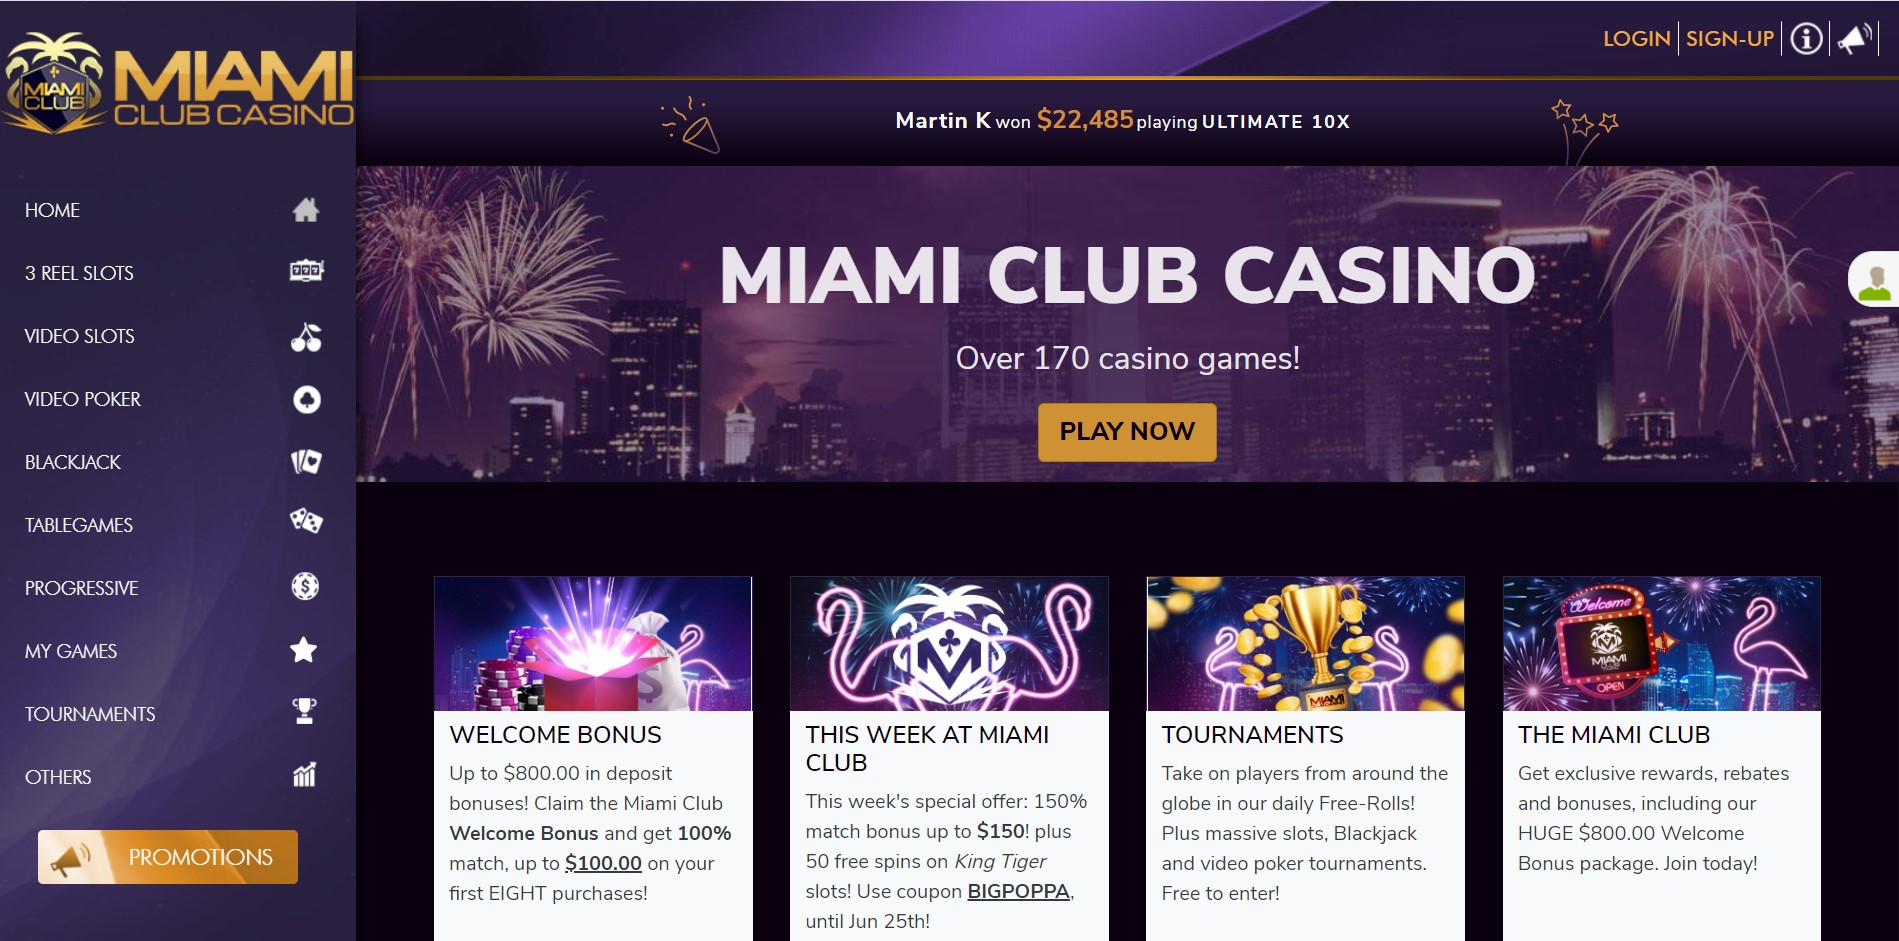 Miami Club Casino Singapore